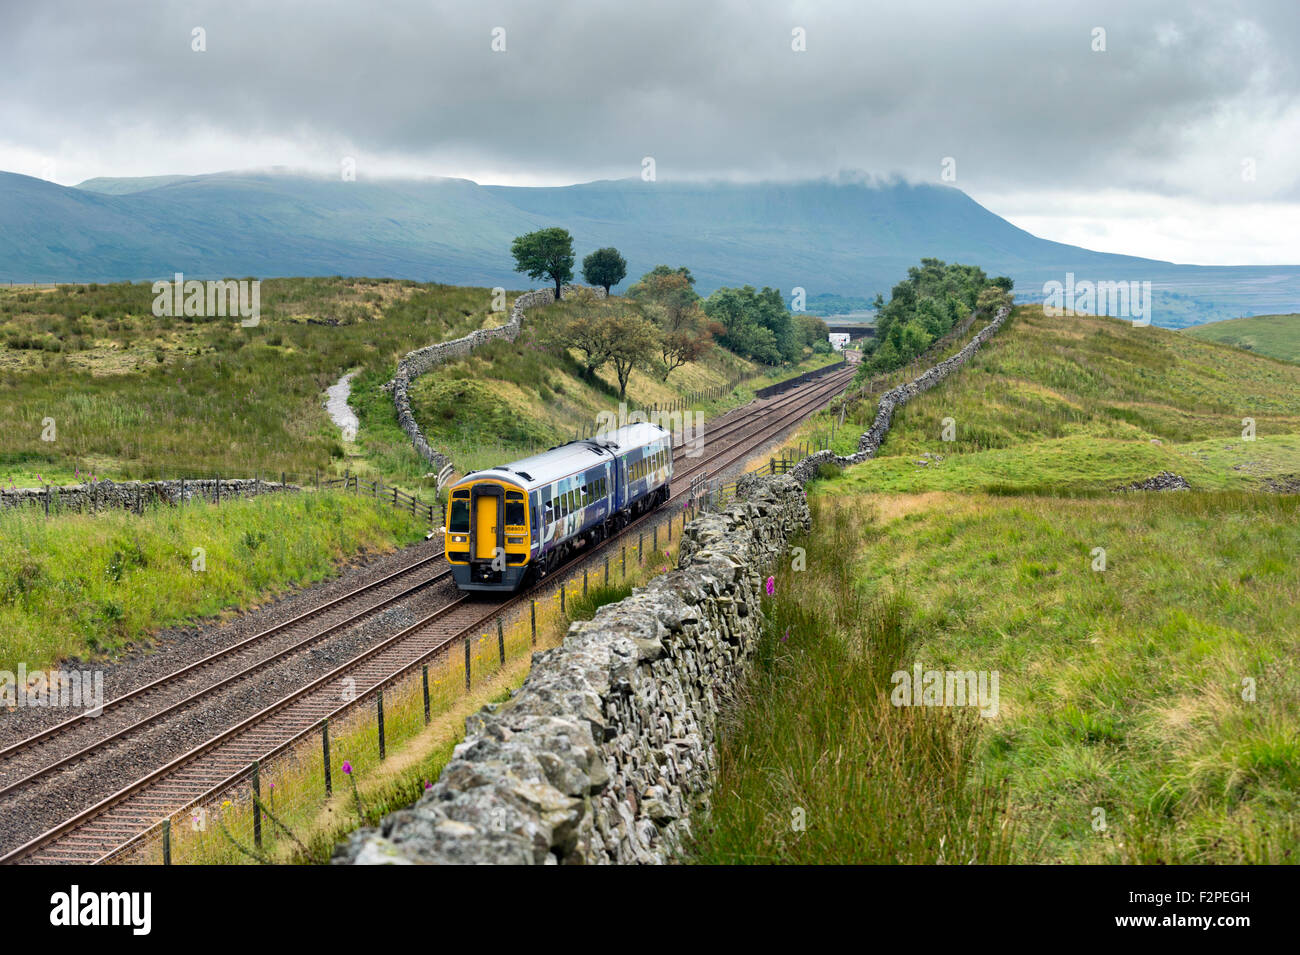 A Sprinter passenger train at Blea Moor on the Settle to Carlisle railway line, with Ingleborough hill in the background - Stock Image